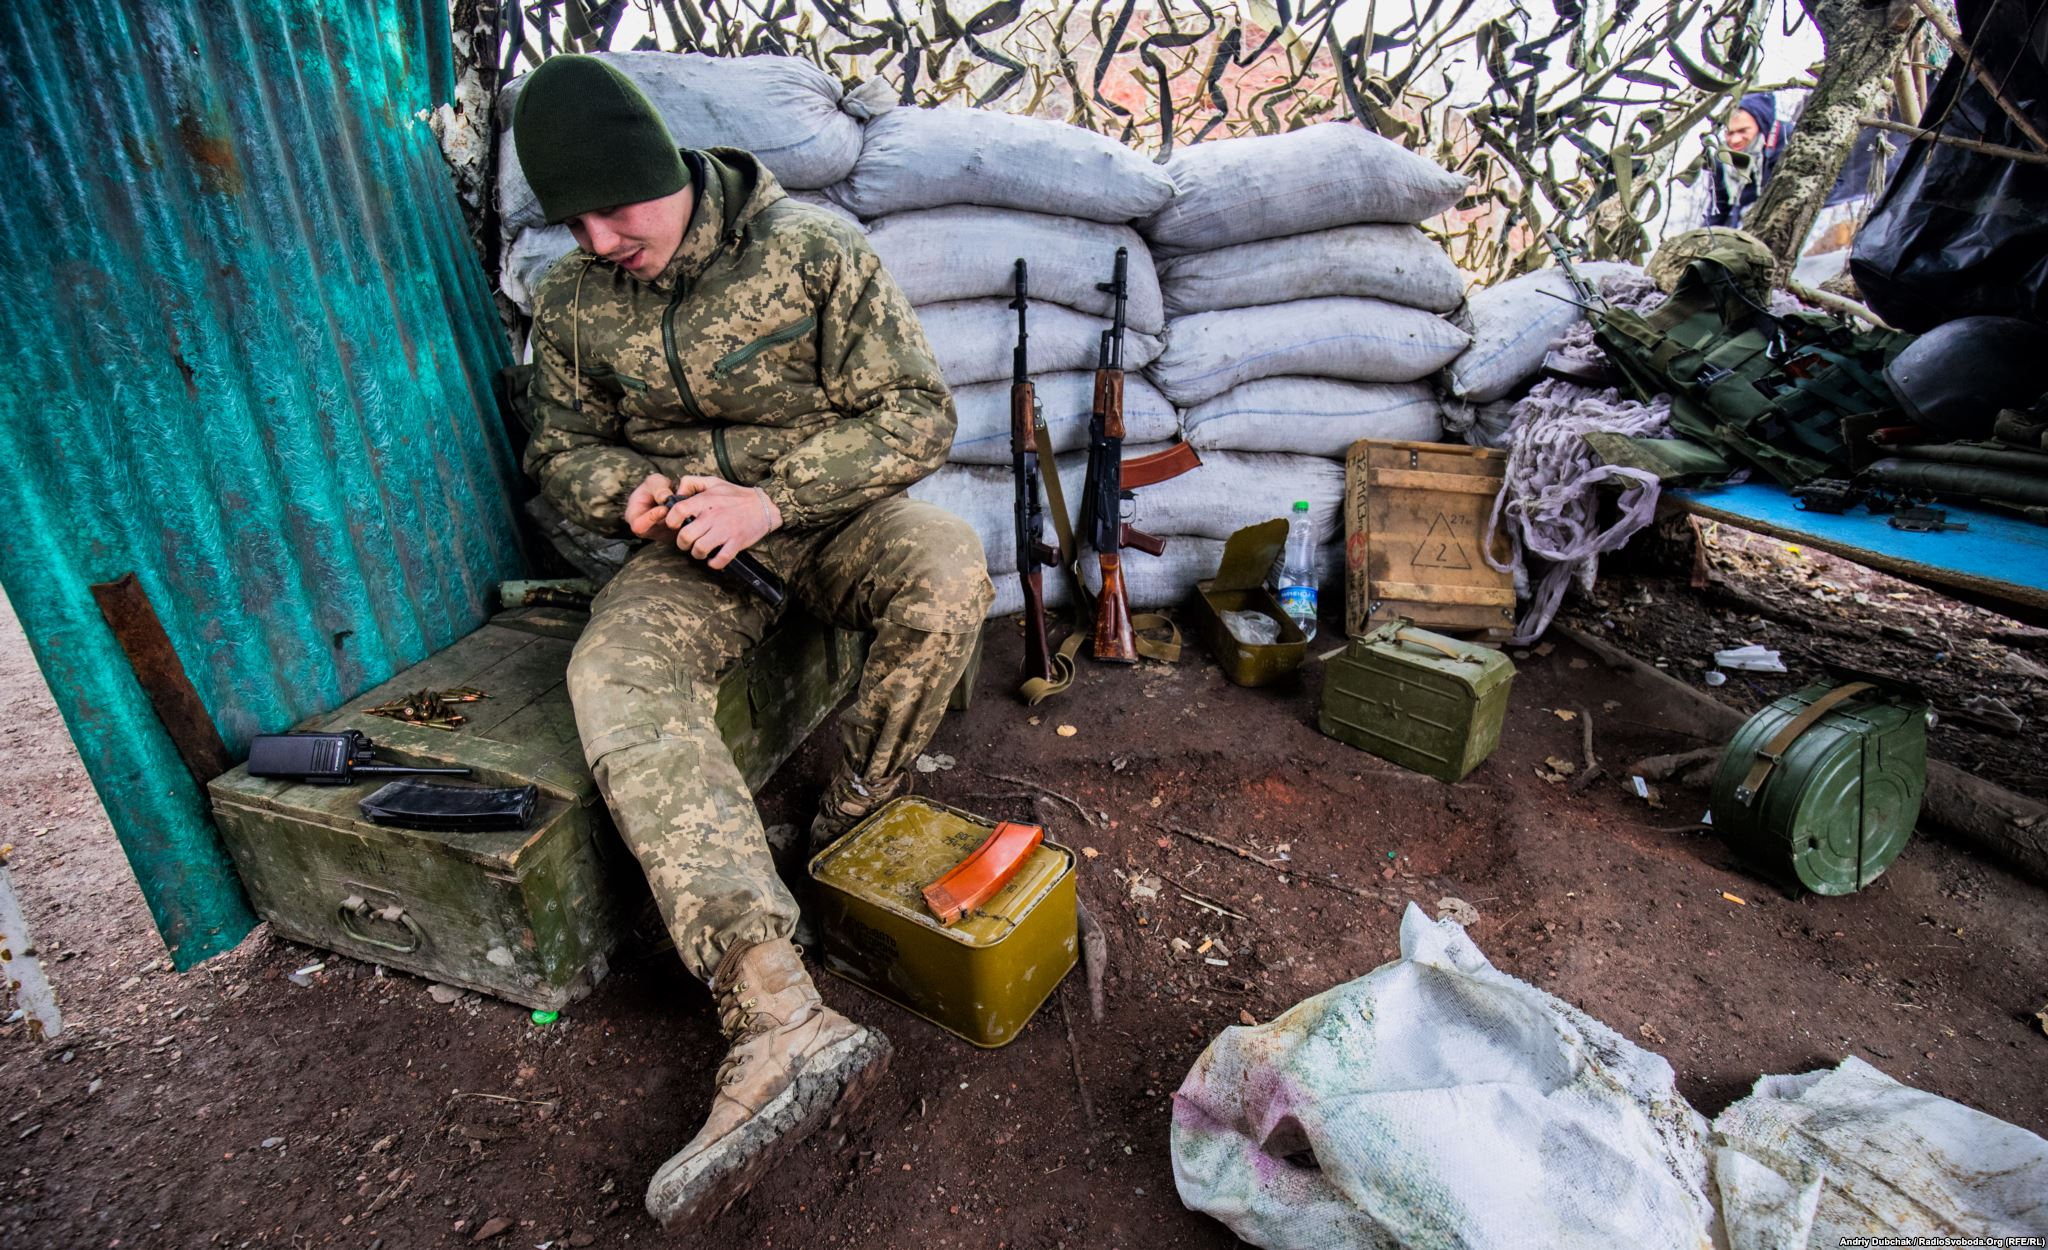 Olexander filled the magazine with rounds (photo by photographer Andriy Dubchak)